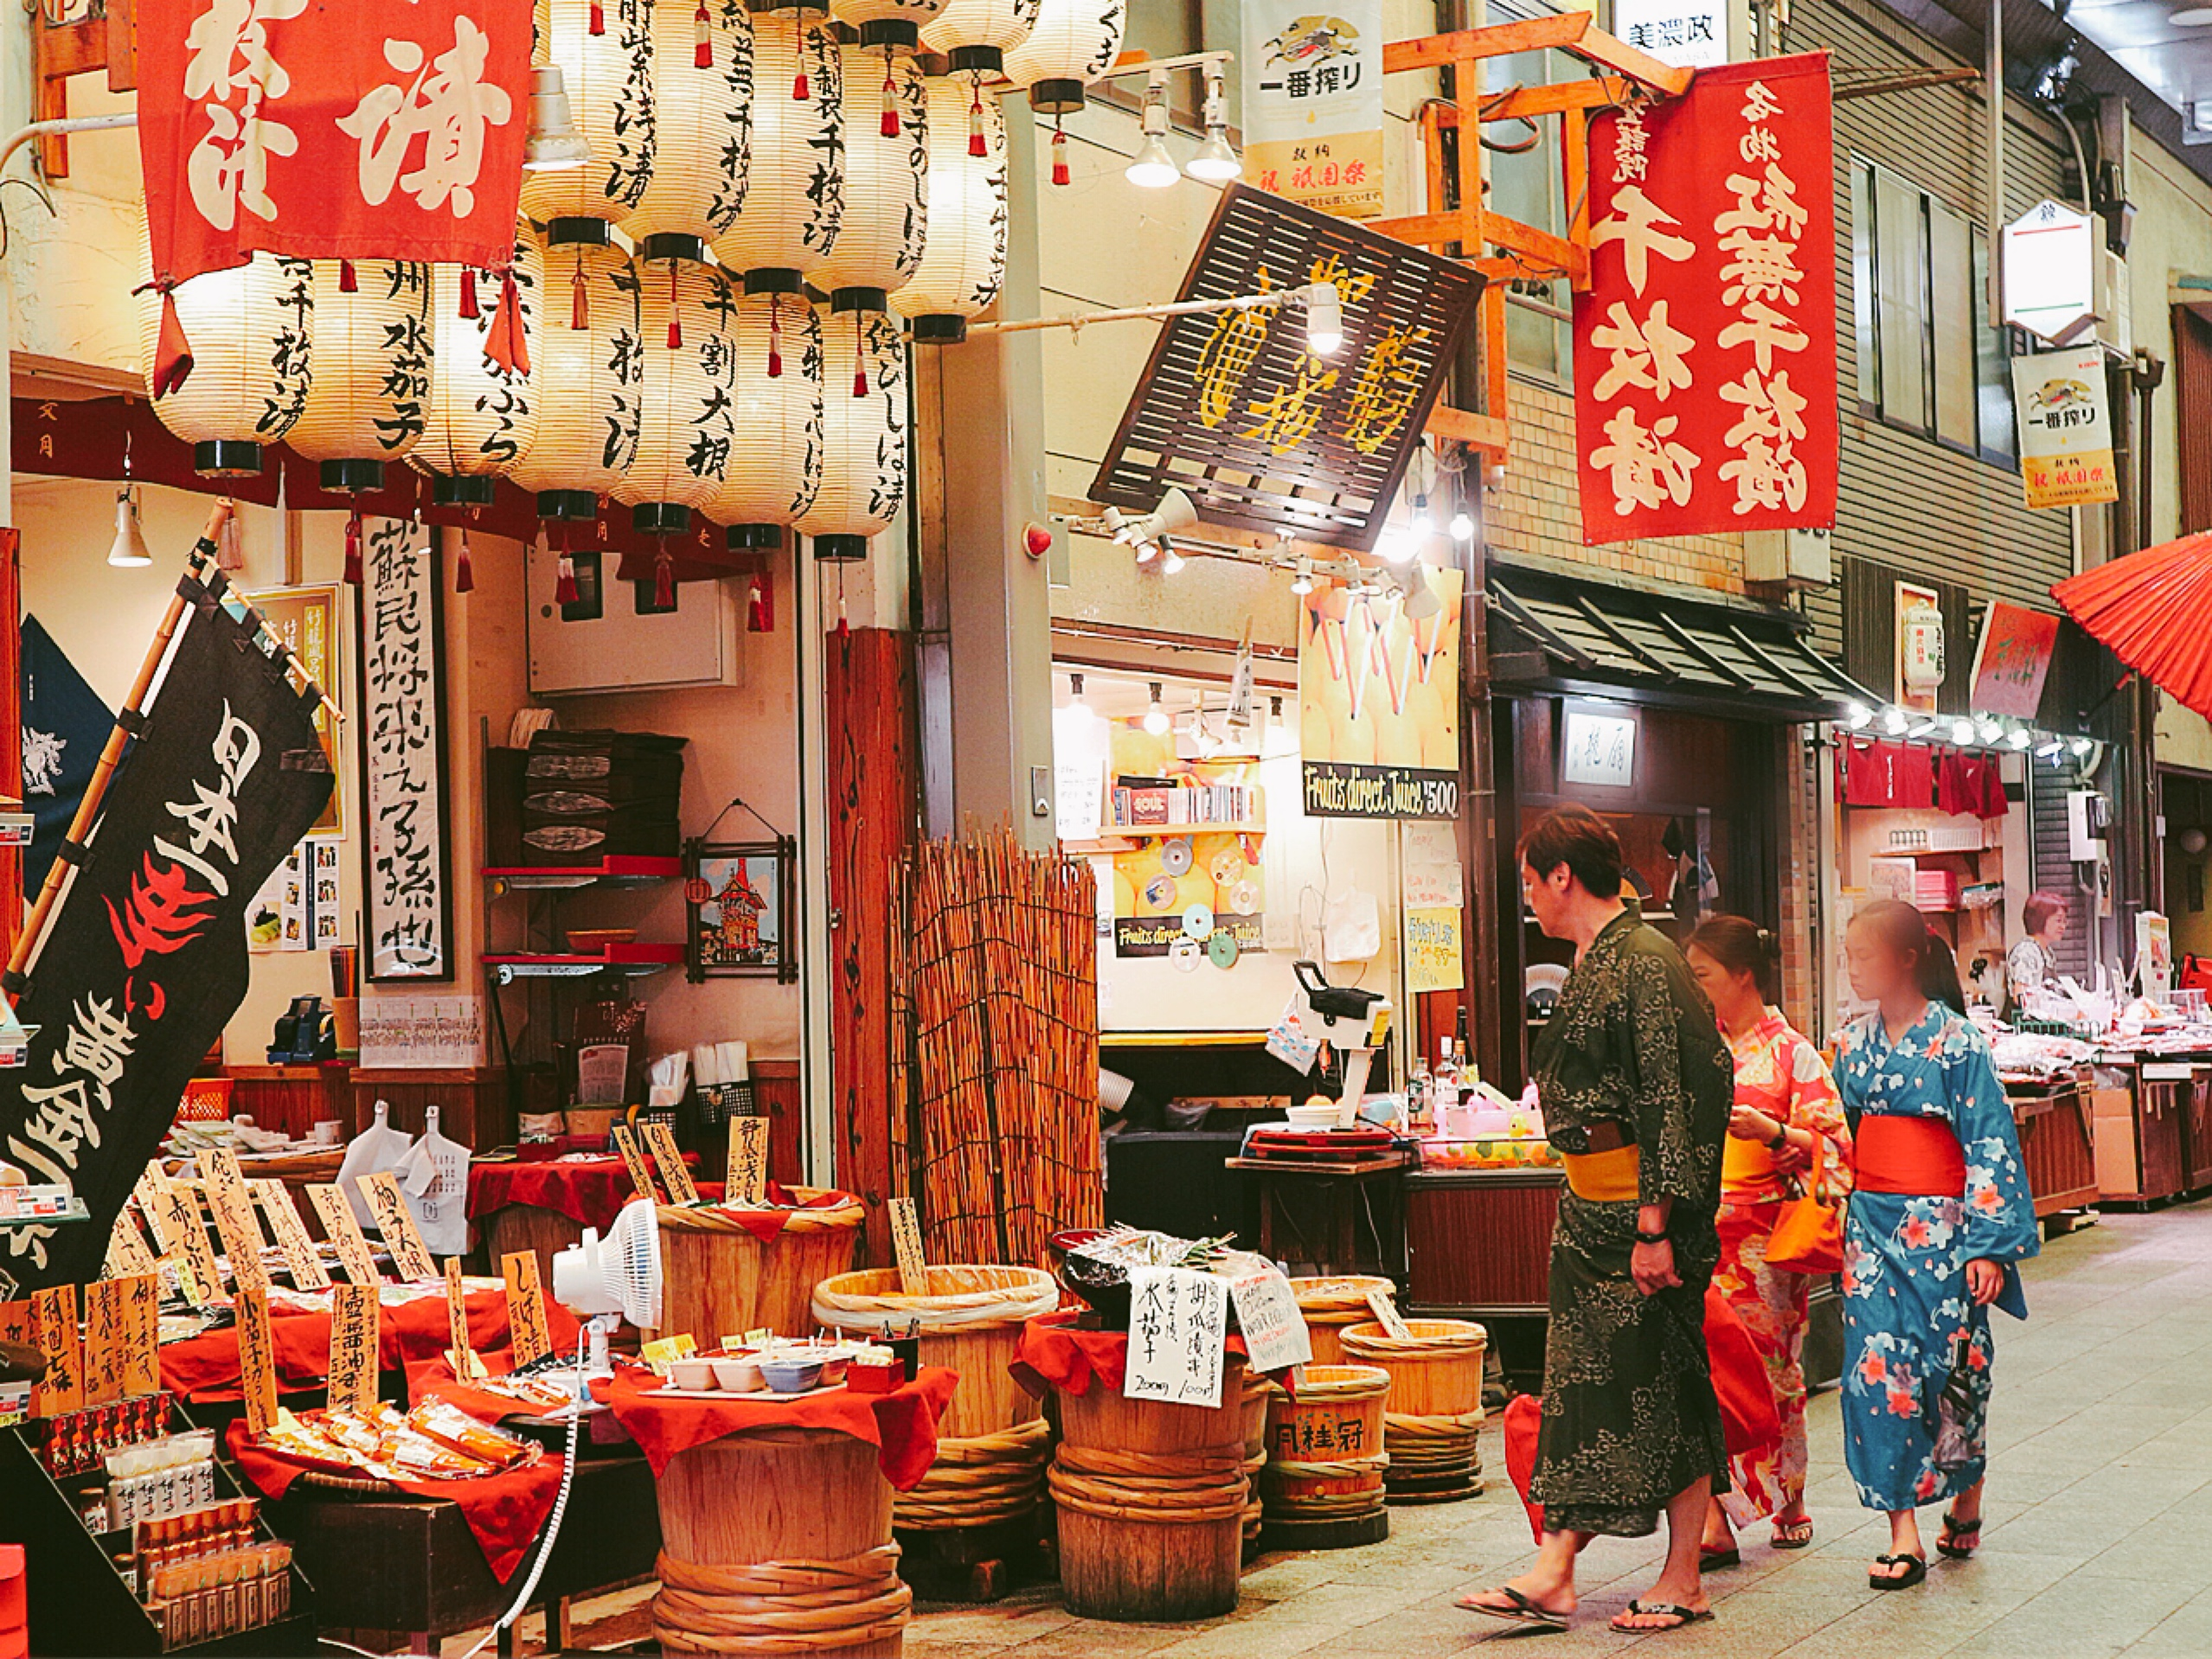 A well known pickled Kyoto vegetable store in Nishiki market